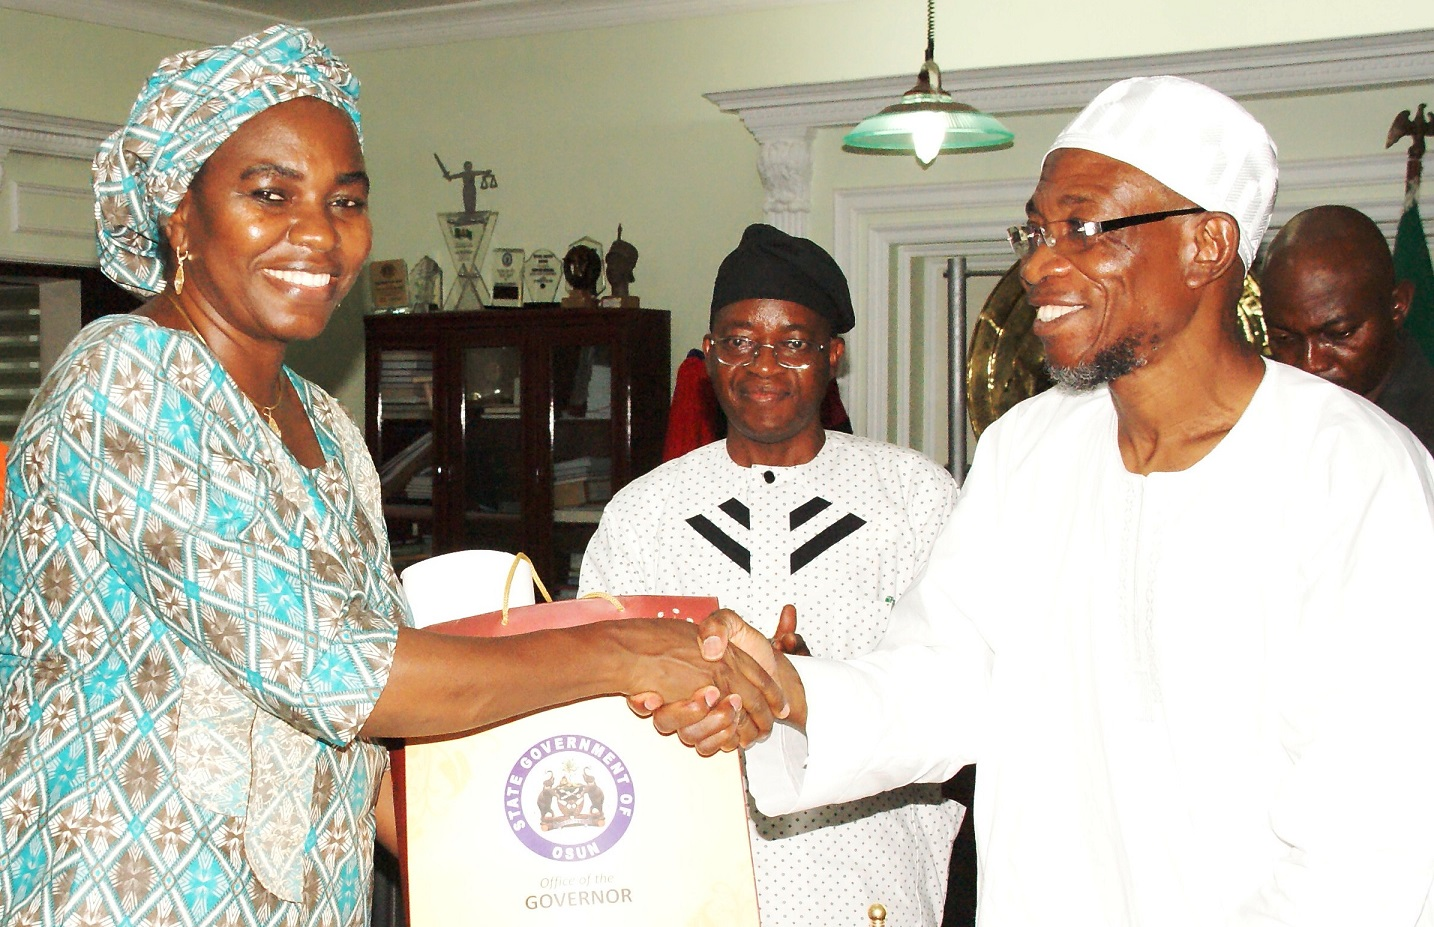 From left, Governor State of Osun, Ogbeni Rauf Aregbesola; Chief of Staff, Alhaji Gboyega Oyetola and Minister for Water Resources, Mrs Sarah Ochekpe, during a Courtesy Visit to the Governor in his Office, Osogbo, State of Osun last Thursday